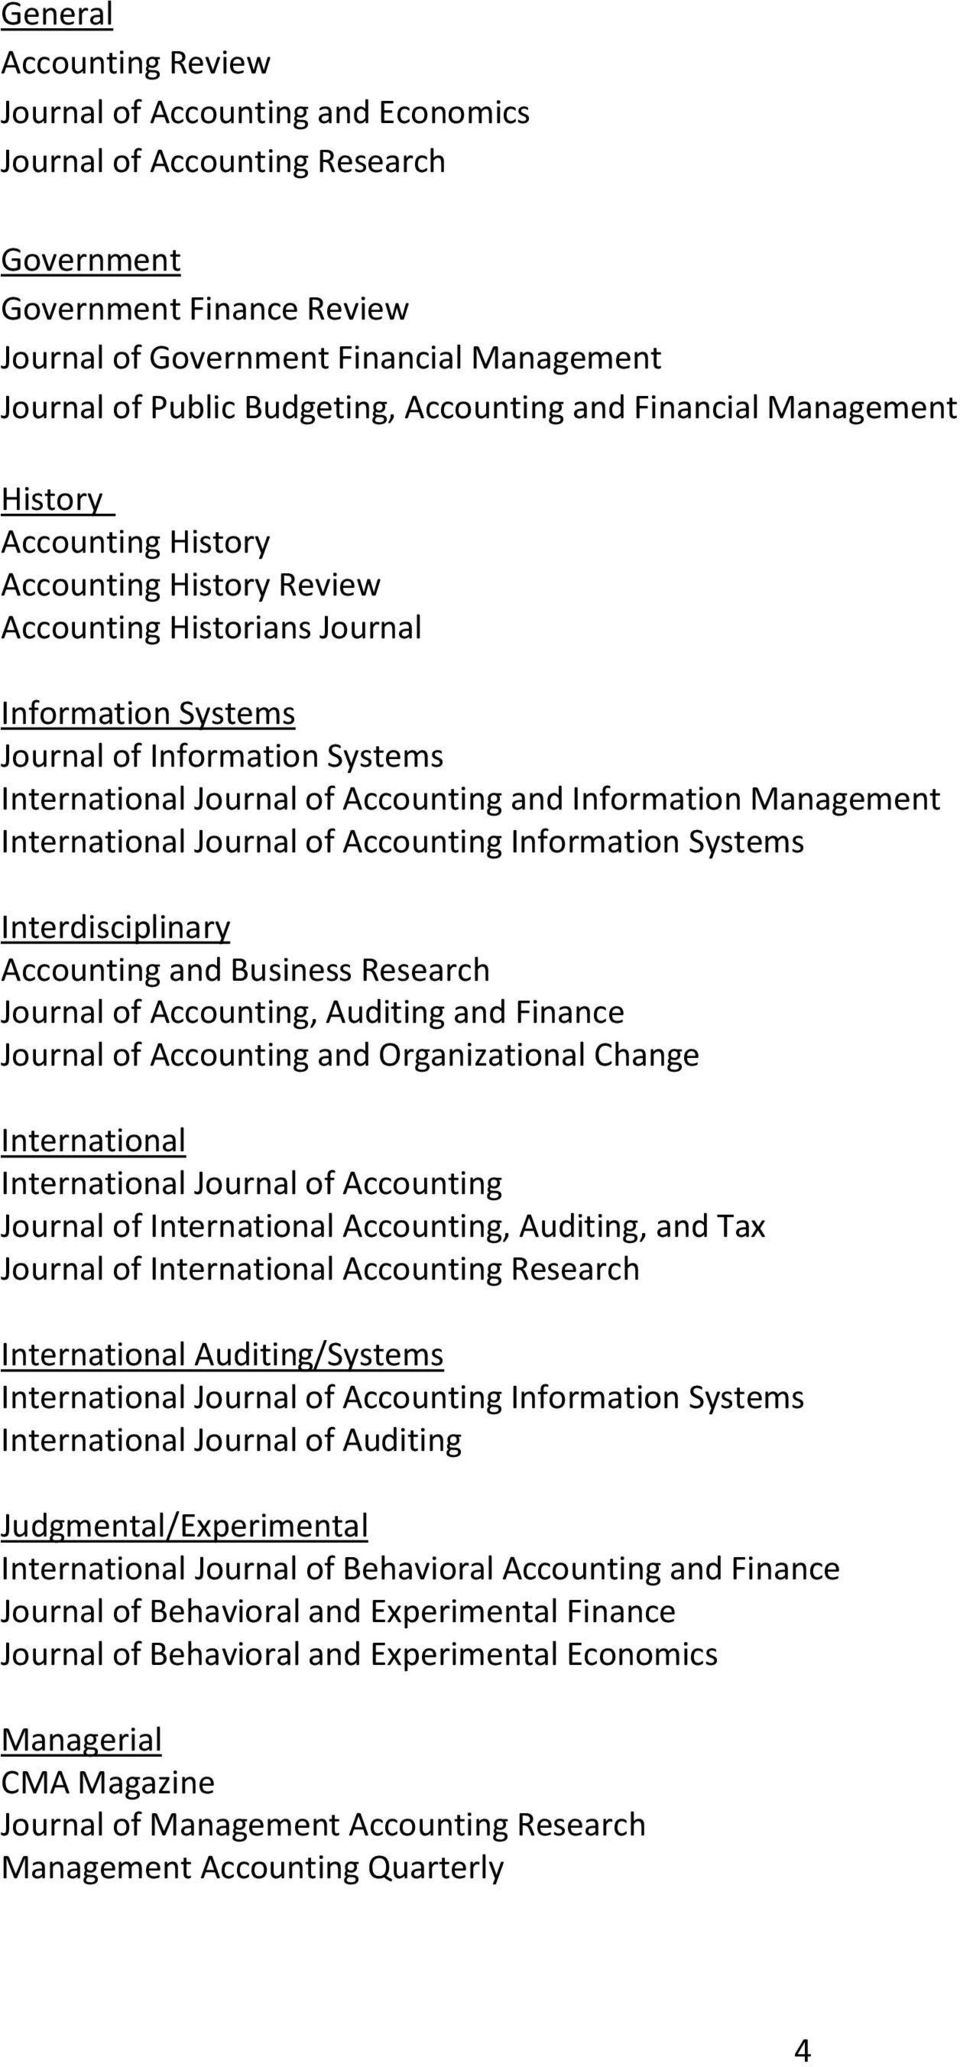 Journal of Accounting and Information Management International Journal of Accounting Information Systems Interdisciplinary Accounting and Business Research Journal of Accounting, Auditing and Finance